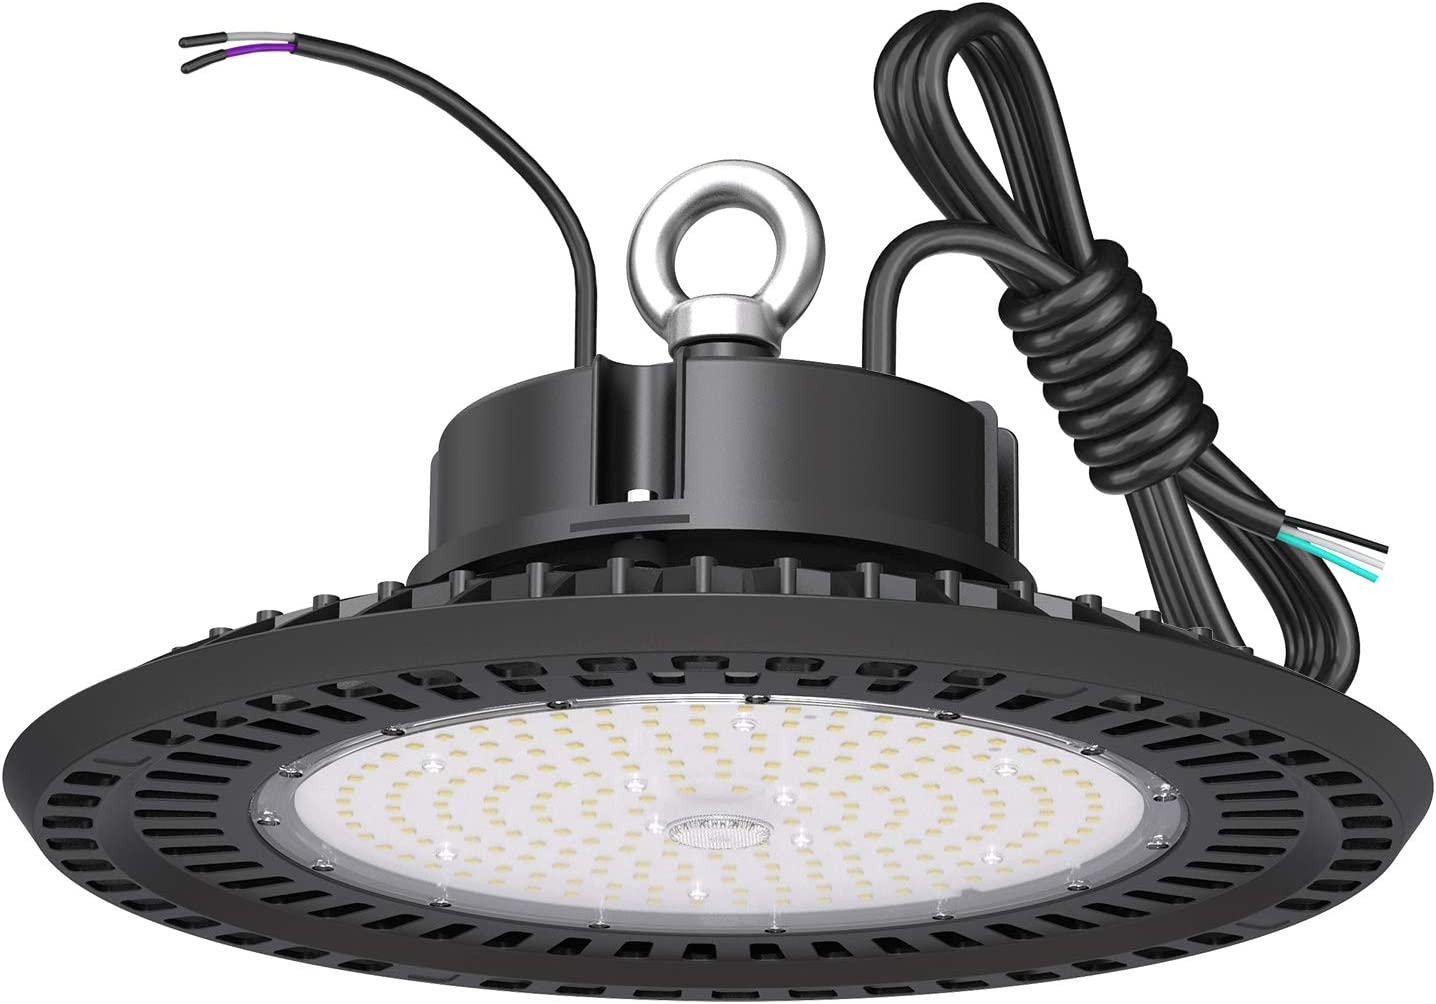 BFT LED High Bay lowest price Light Rare 240W UFO 000LM Dimmable 5000K 0-10V 10 36